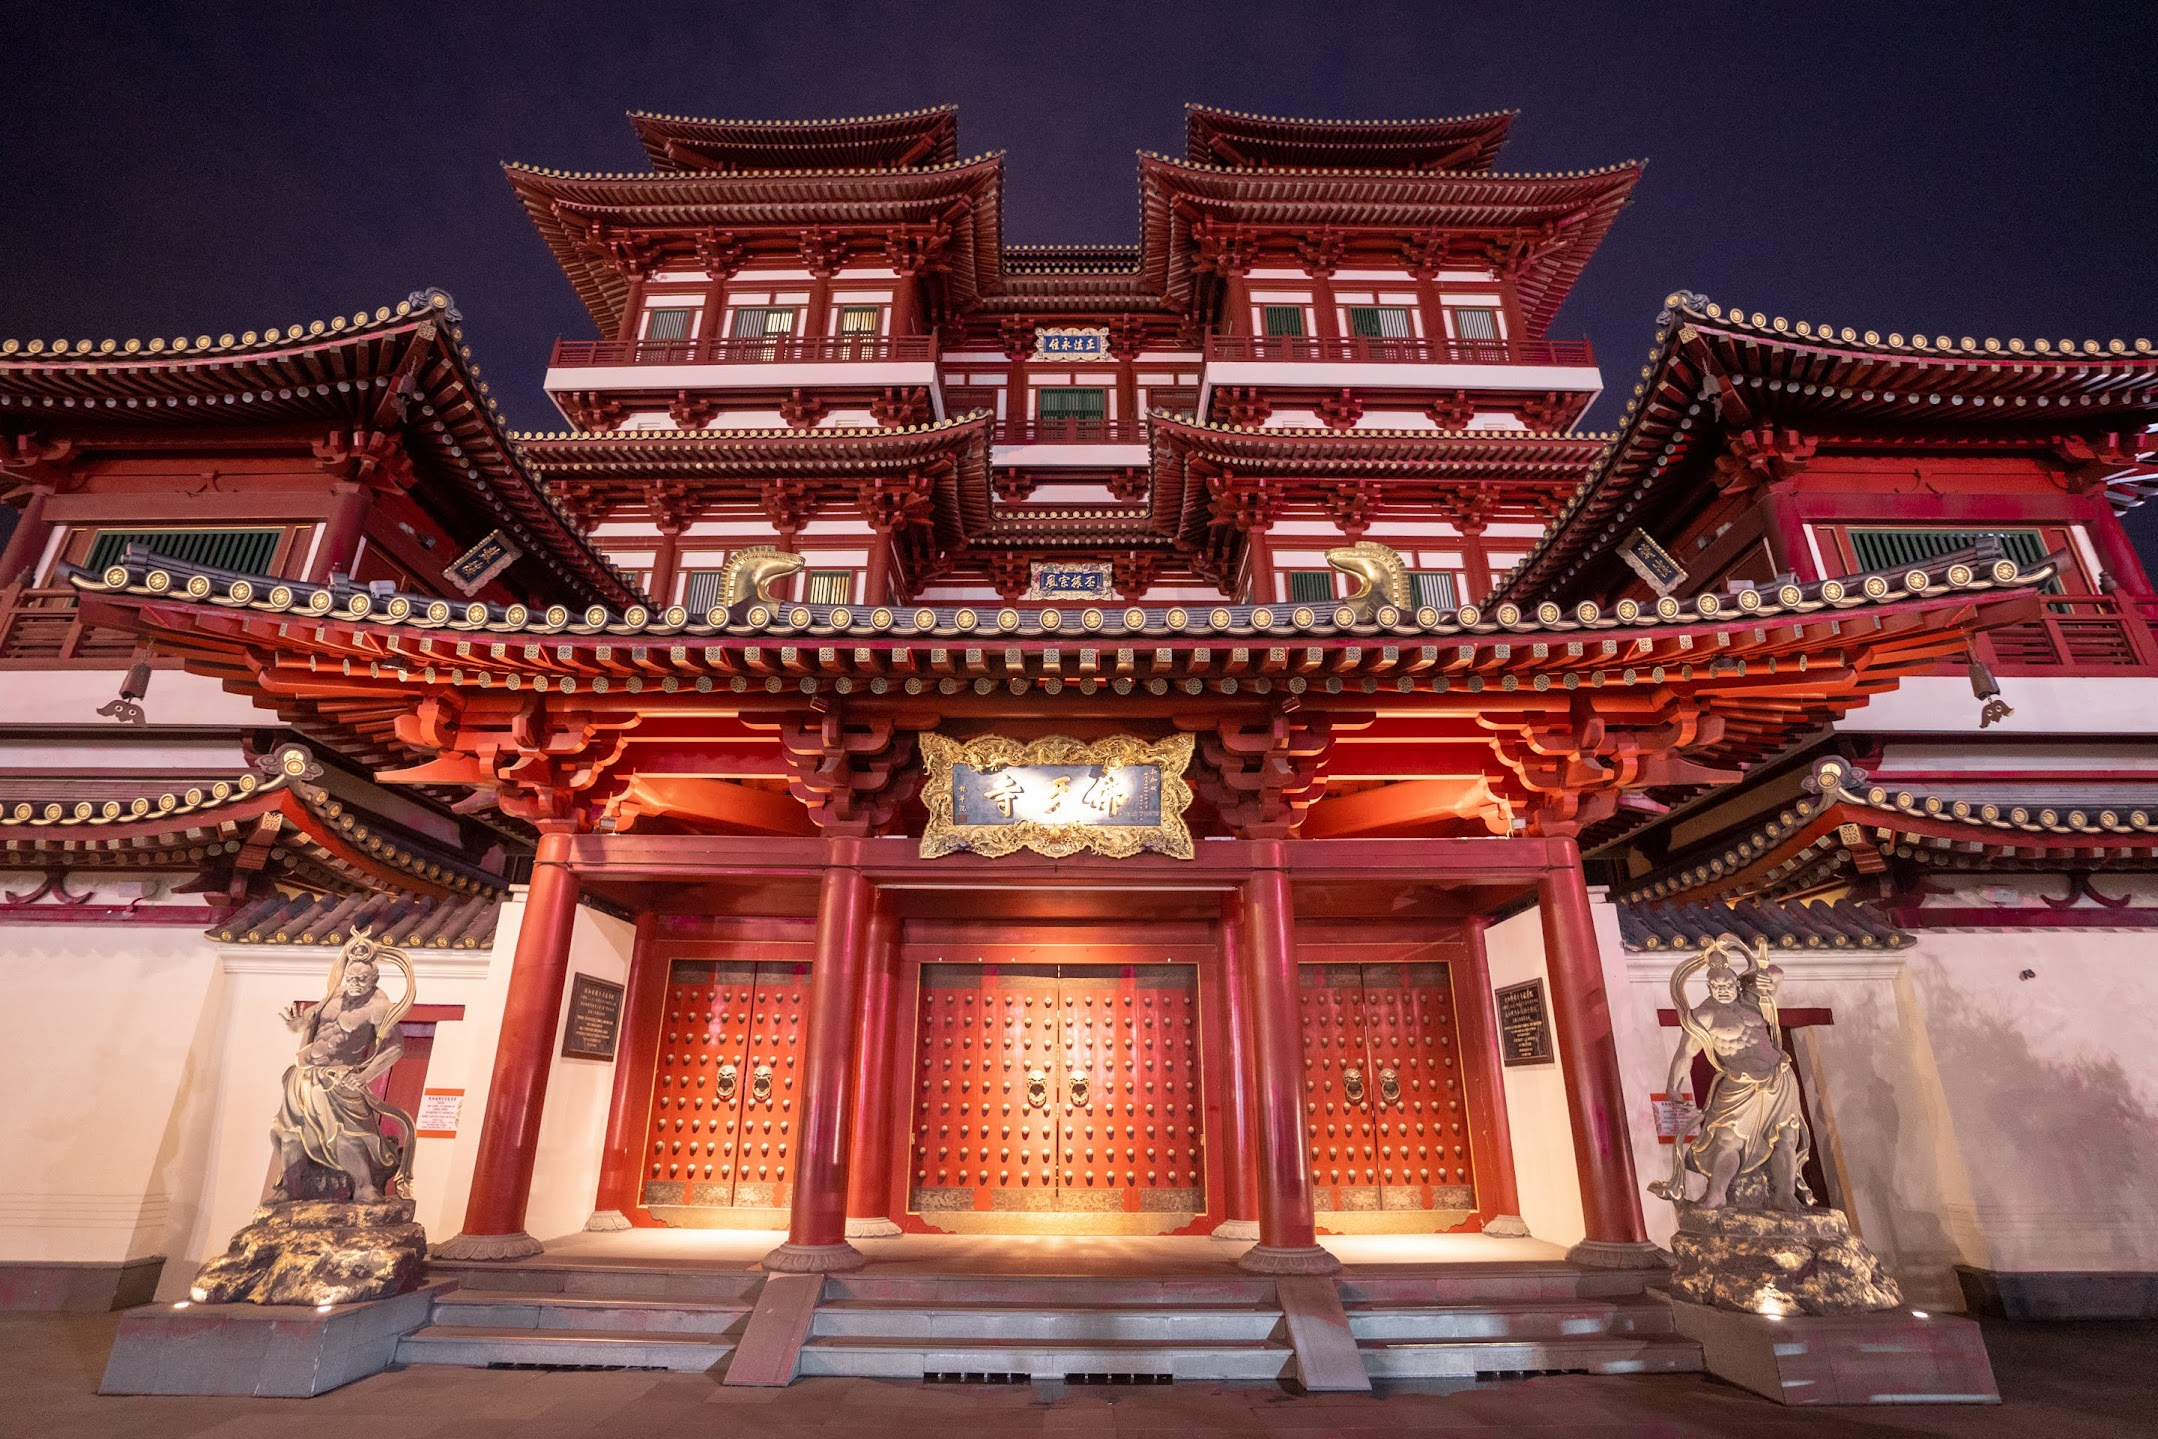 シンガポール チャイナタウン 新加坡佛牙寺龍牙院 (Buddha Tooth Relic Temple and MuseumBuddha Tooth Relic Temple and Museum) 夜2